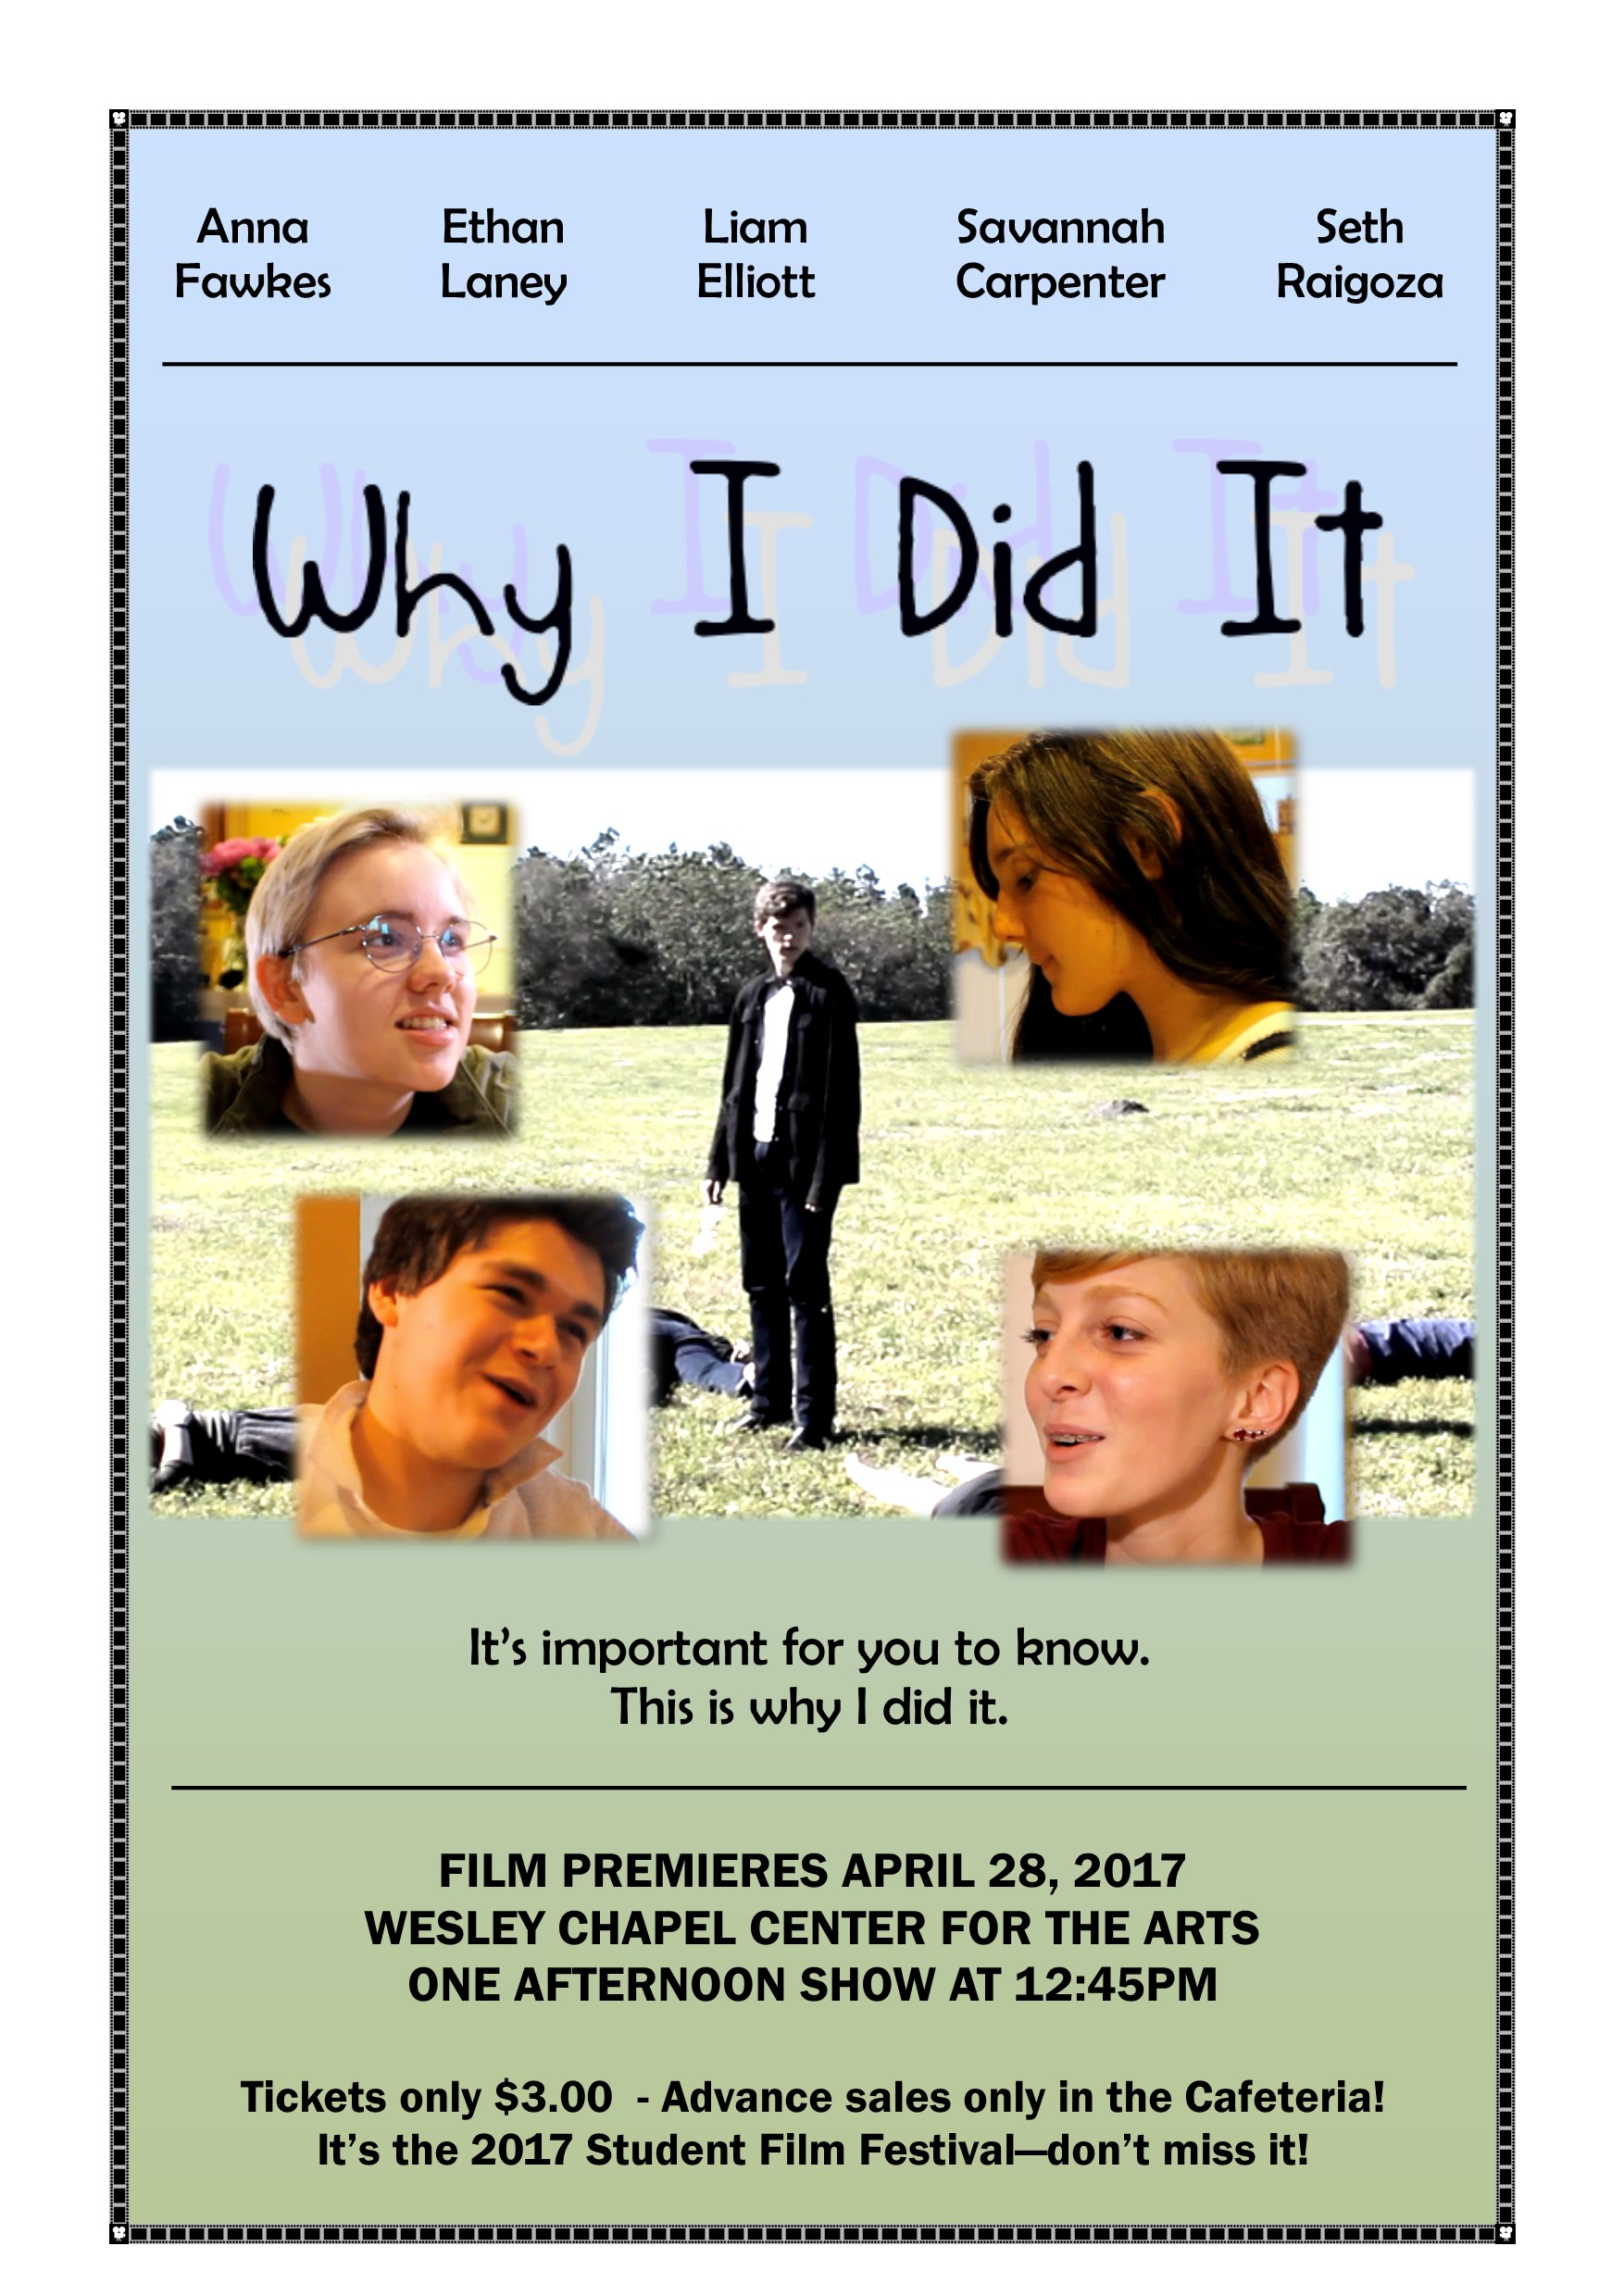 Film Fest 2017 Poster - Why I Did It.jpg